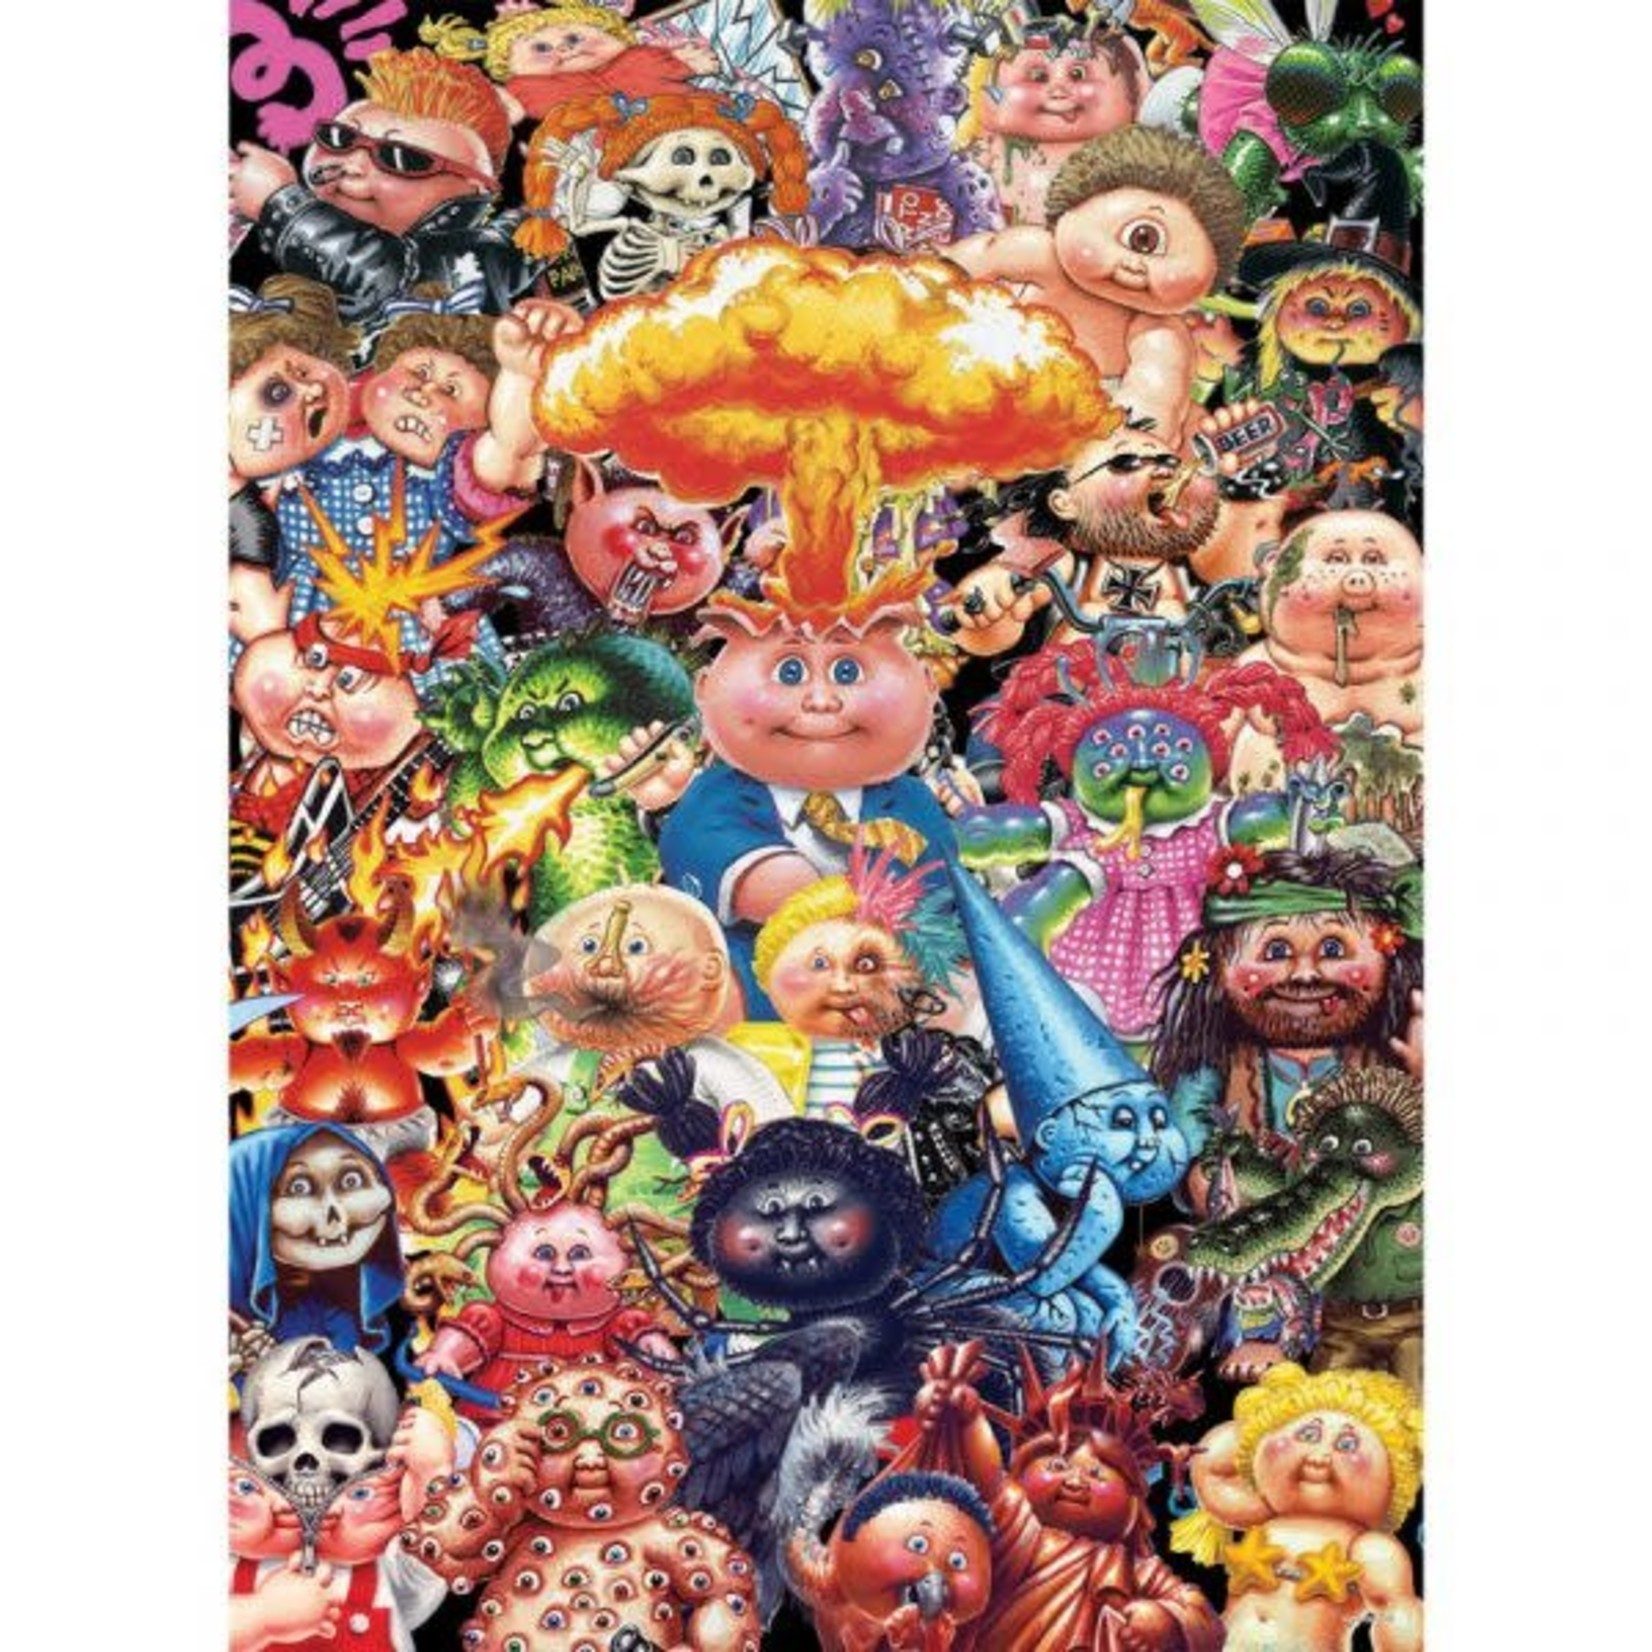 USAoploy The OP - 1000 Piece Puzzle: Garbage Pail Kids Yuck